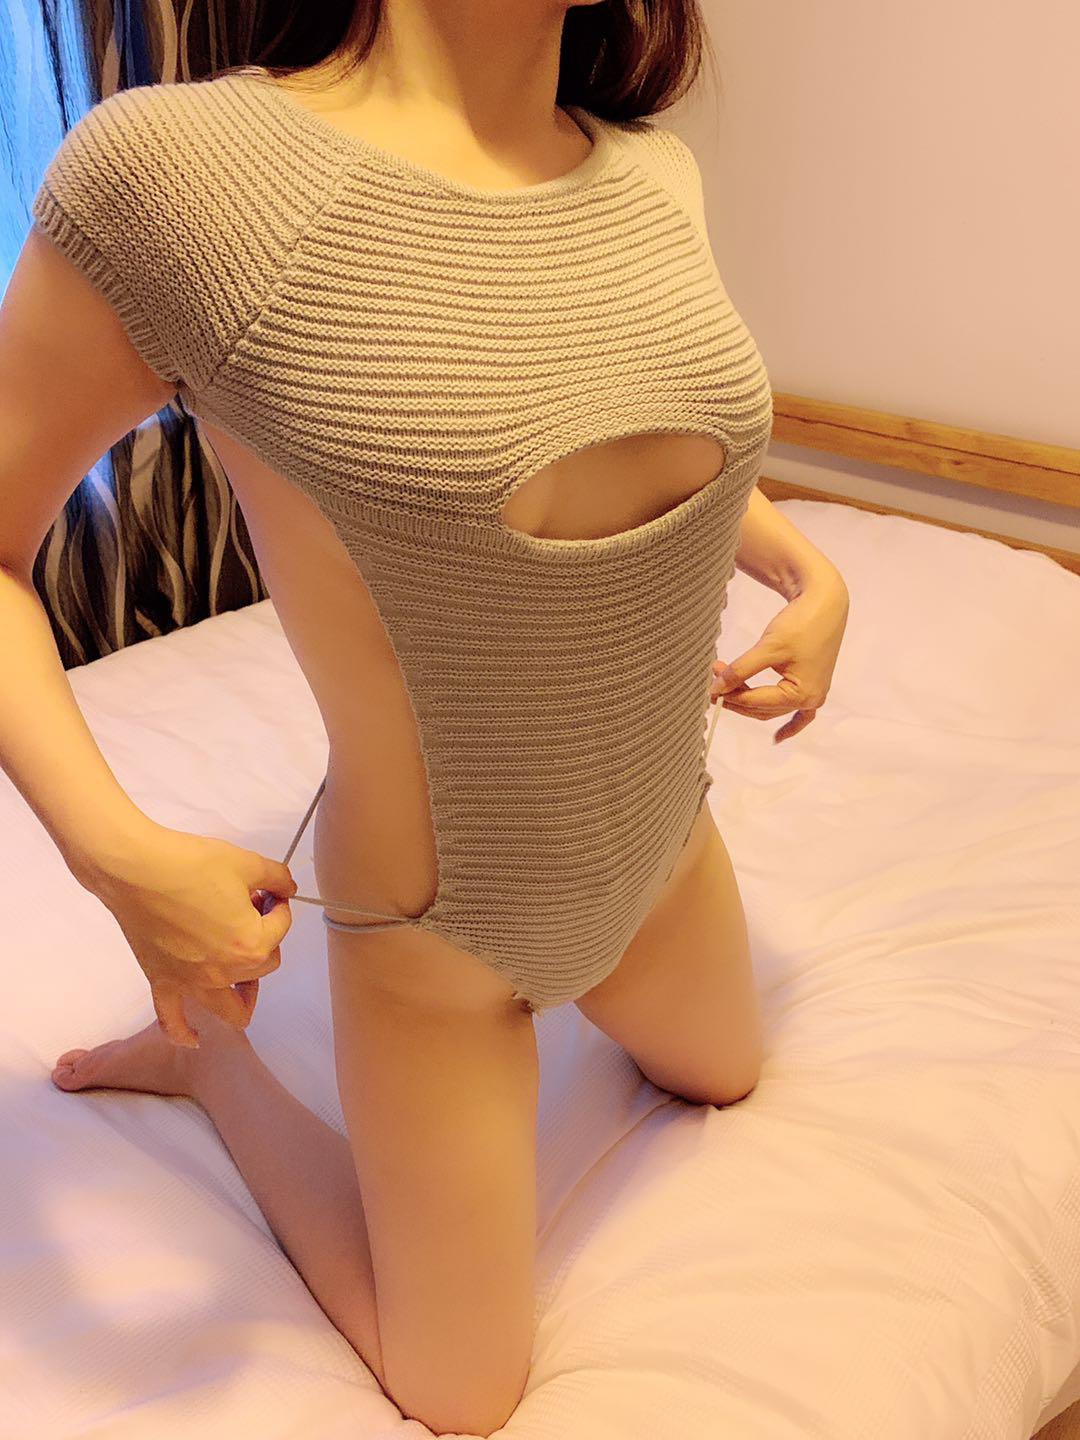 22 sexy young stunning baby, Auckland